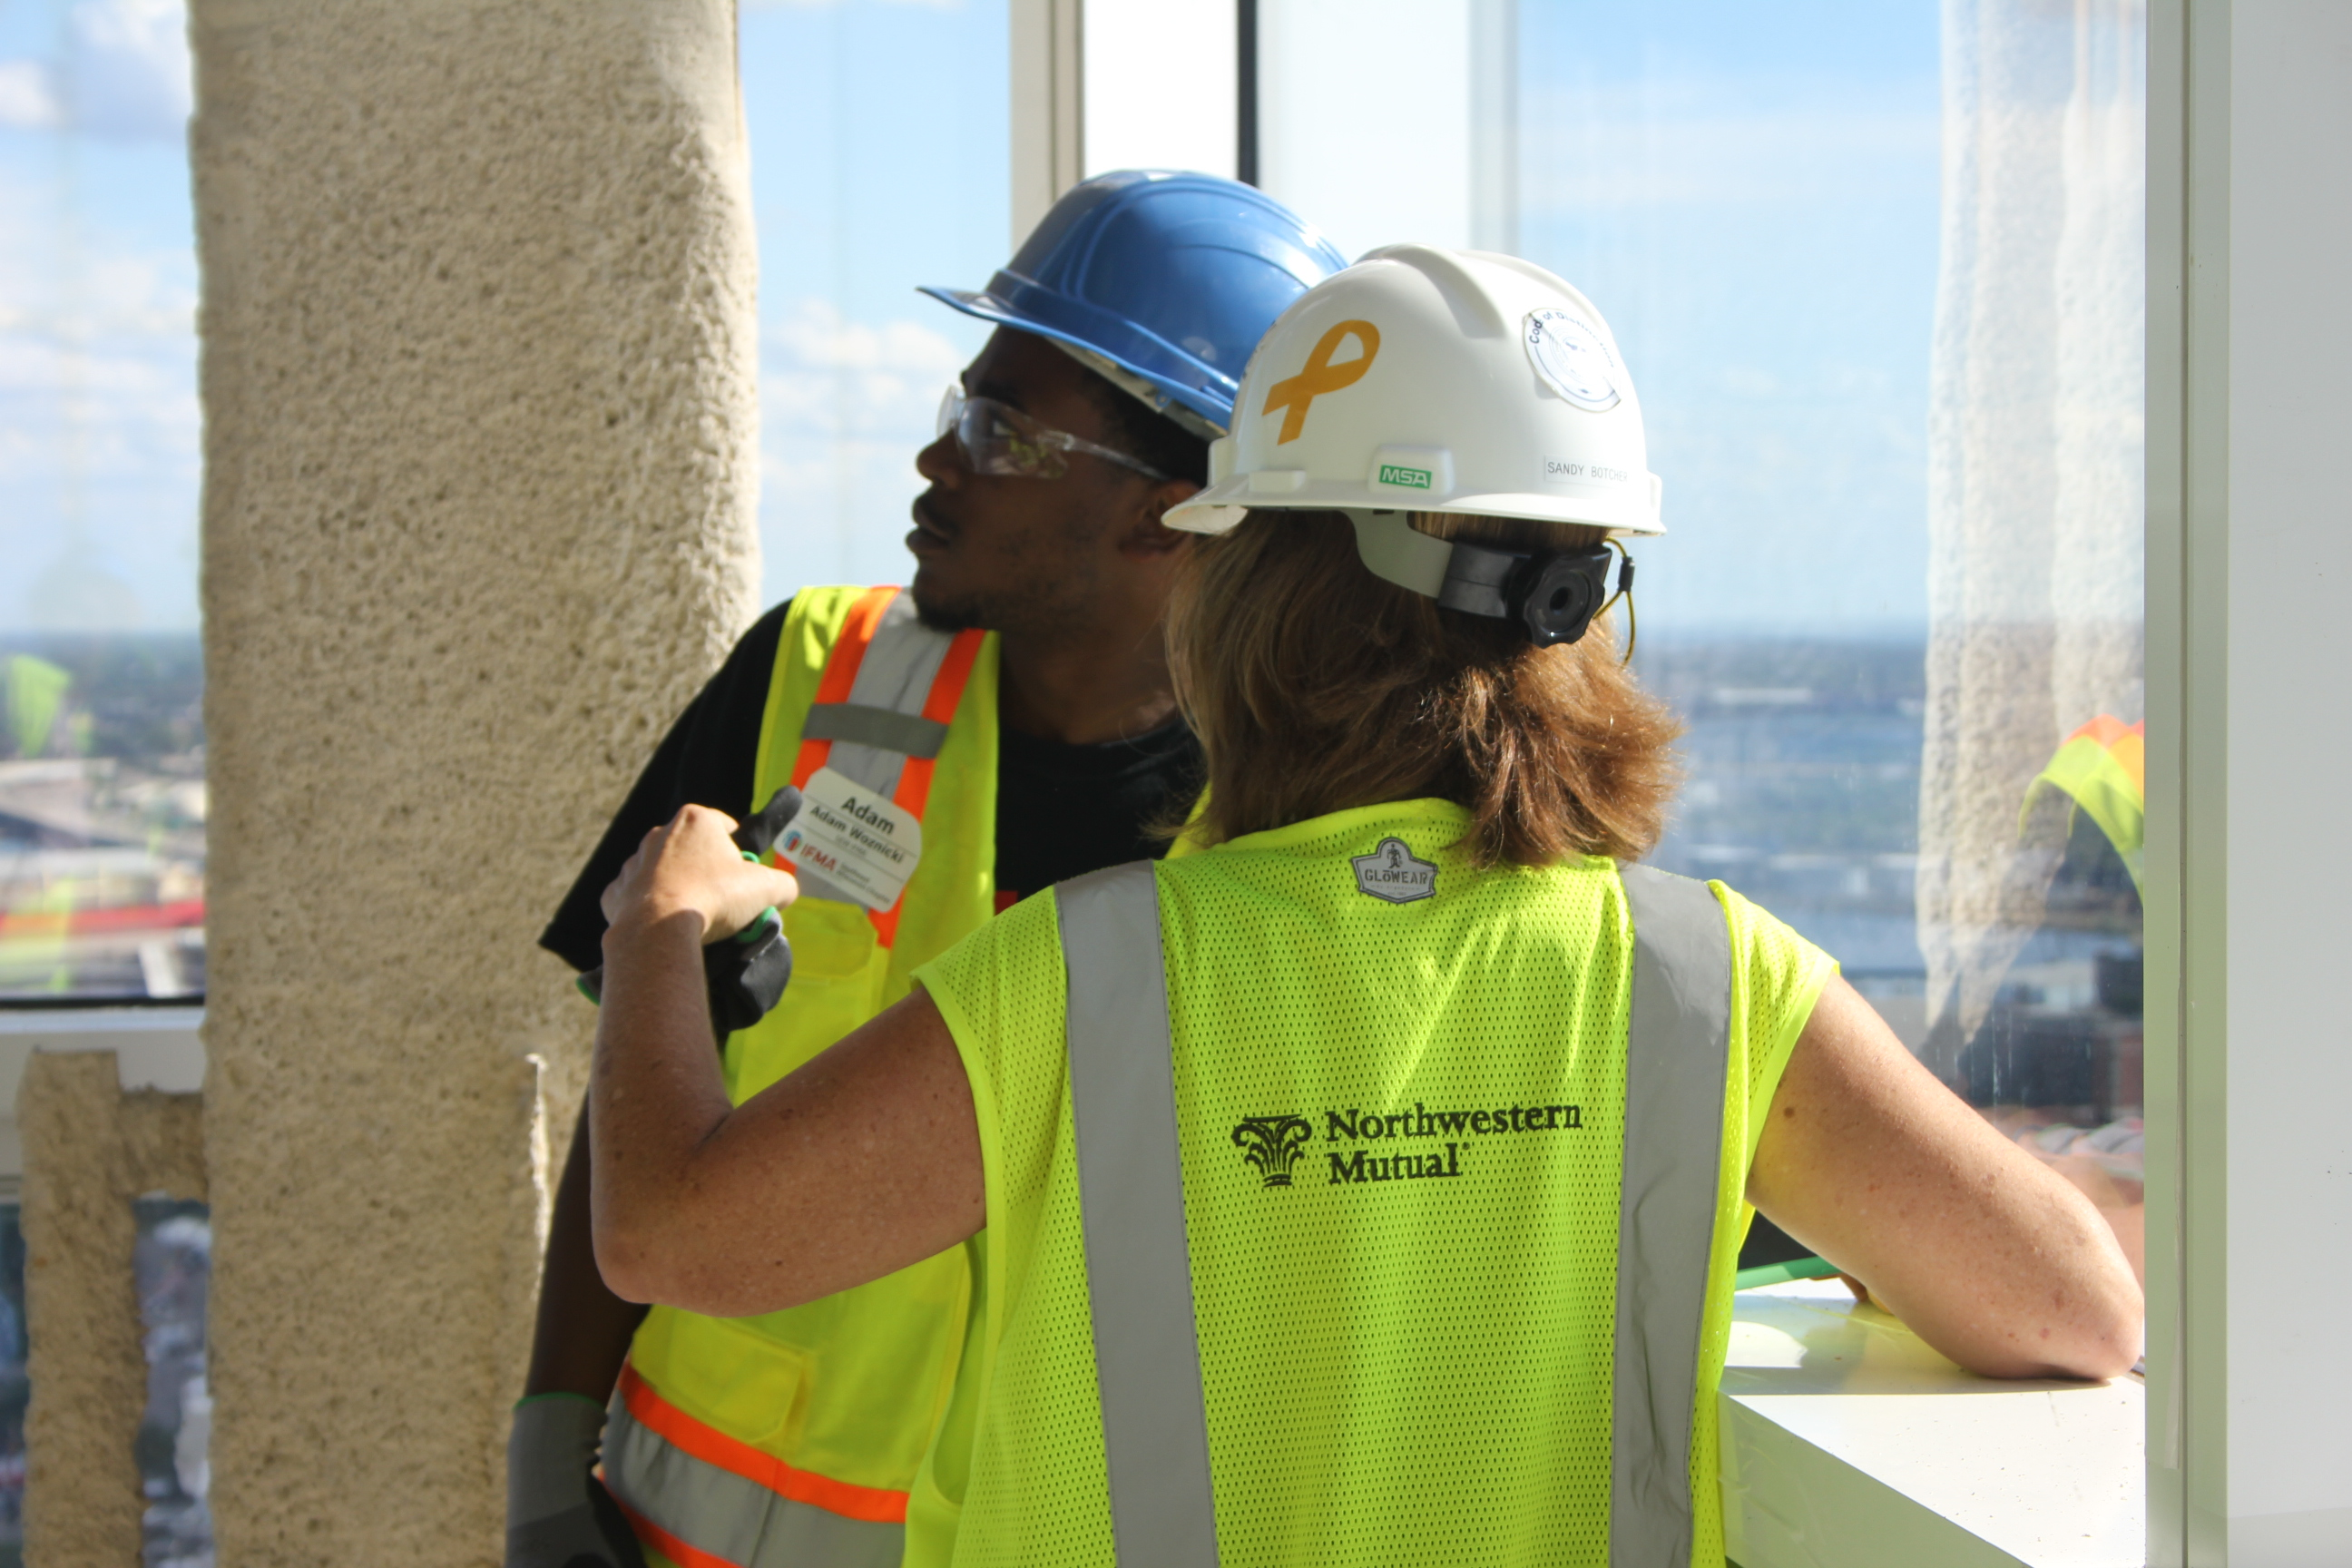 Workers interacting at NM Tower.